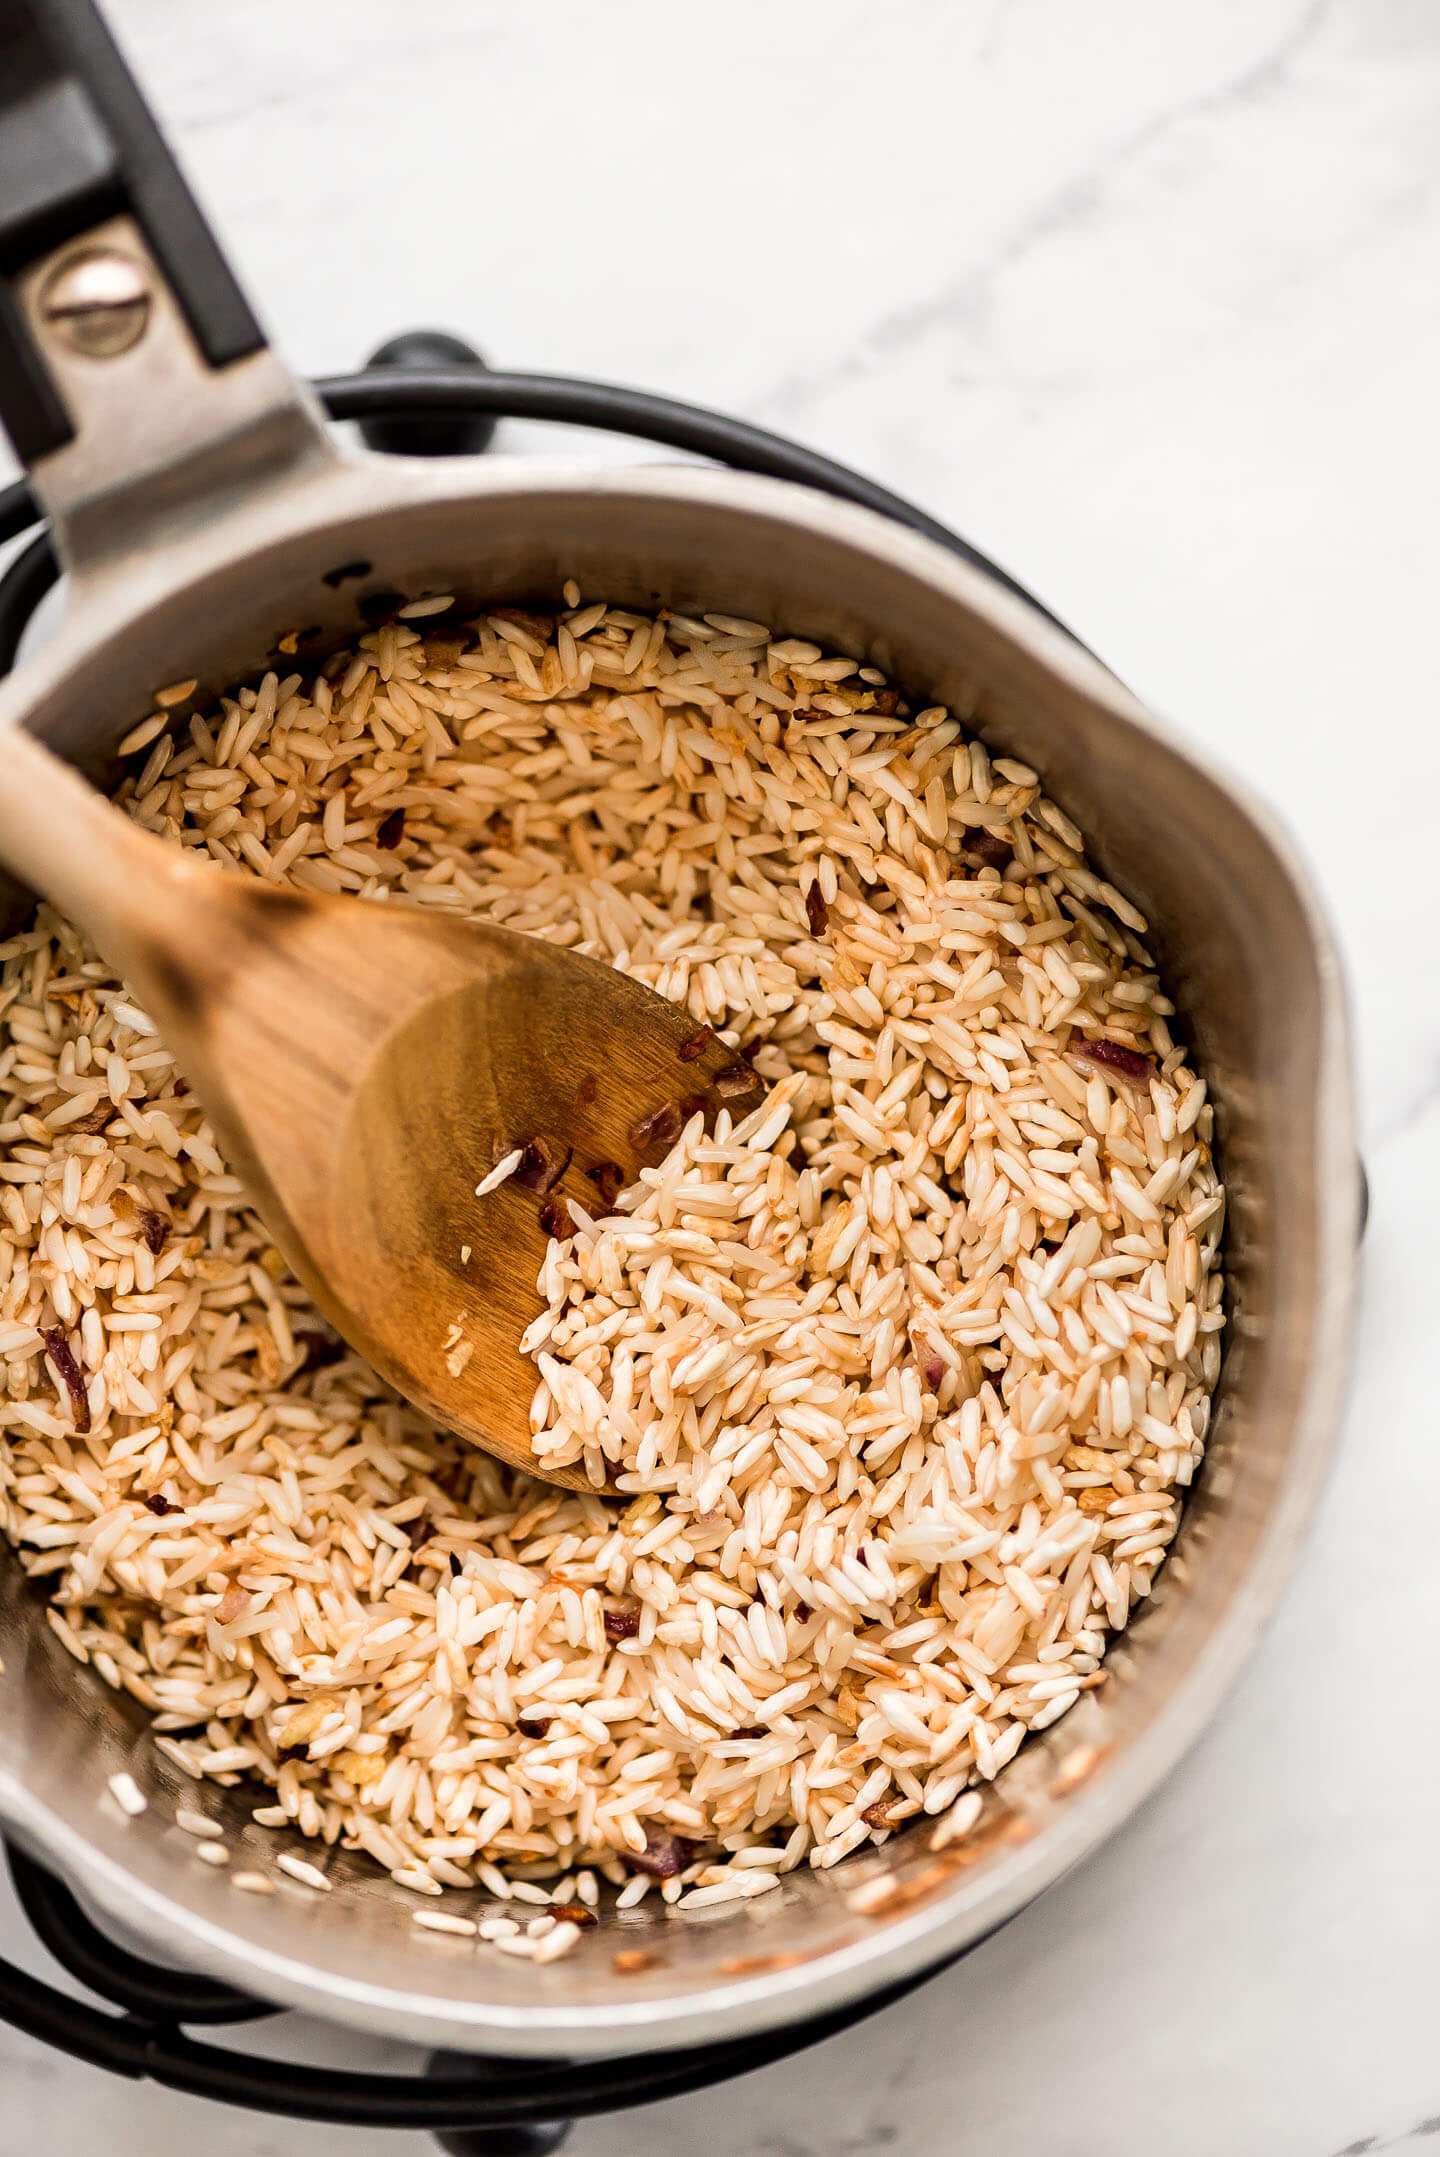 Browned rice in a pot with a wooden spoon.